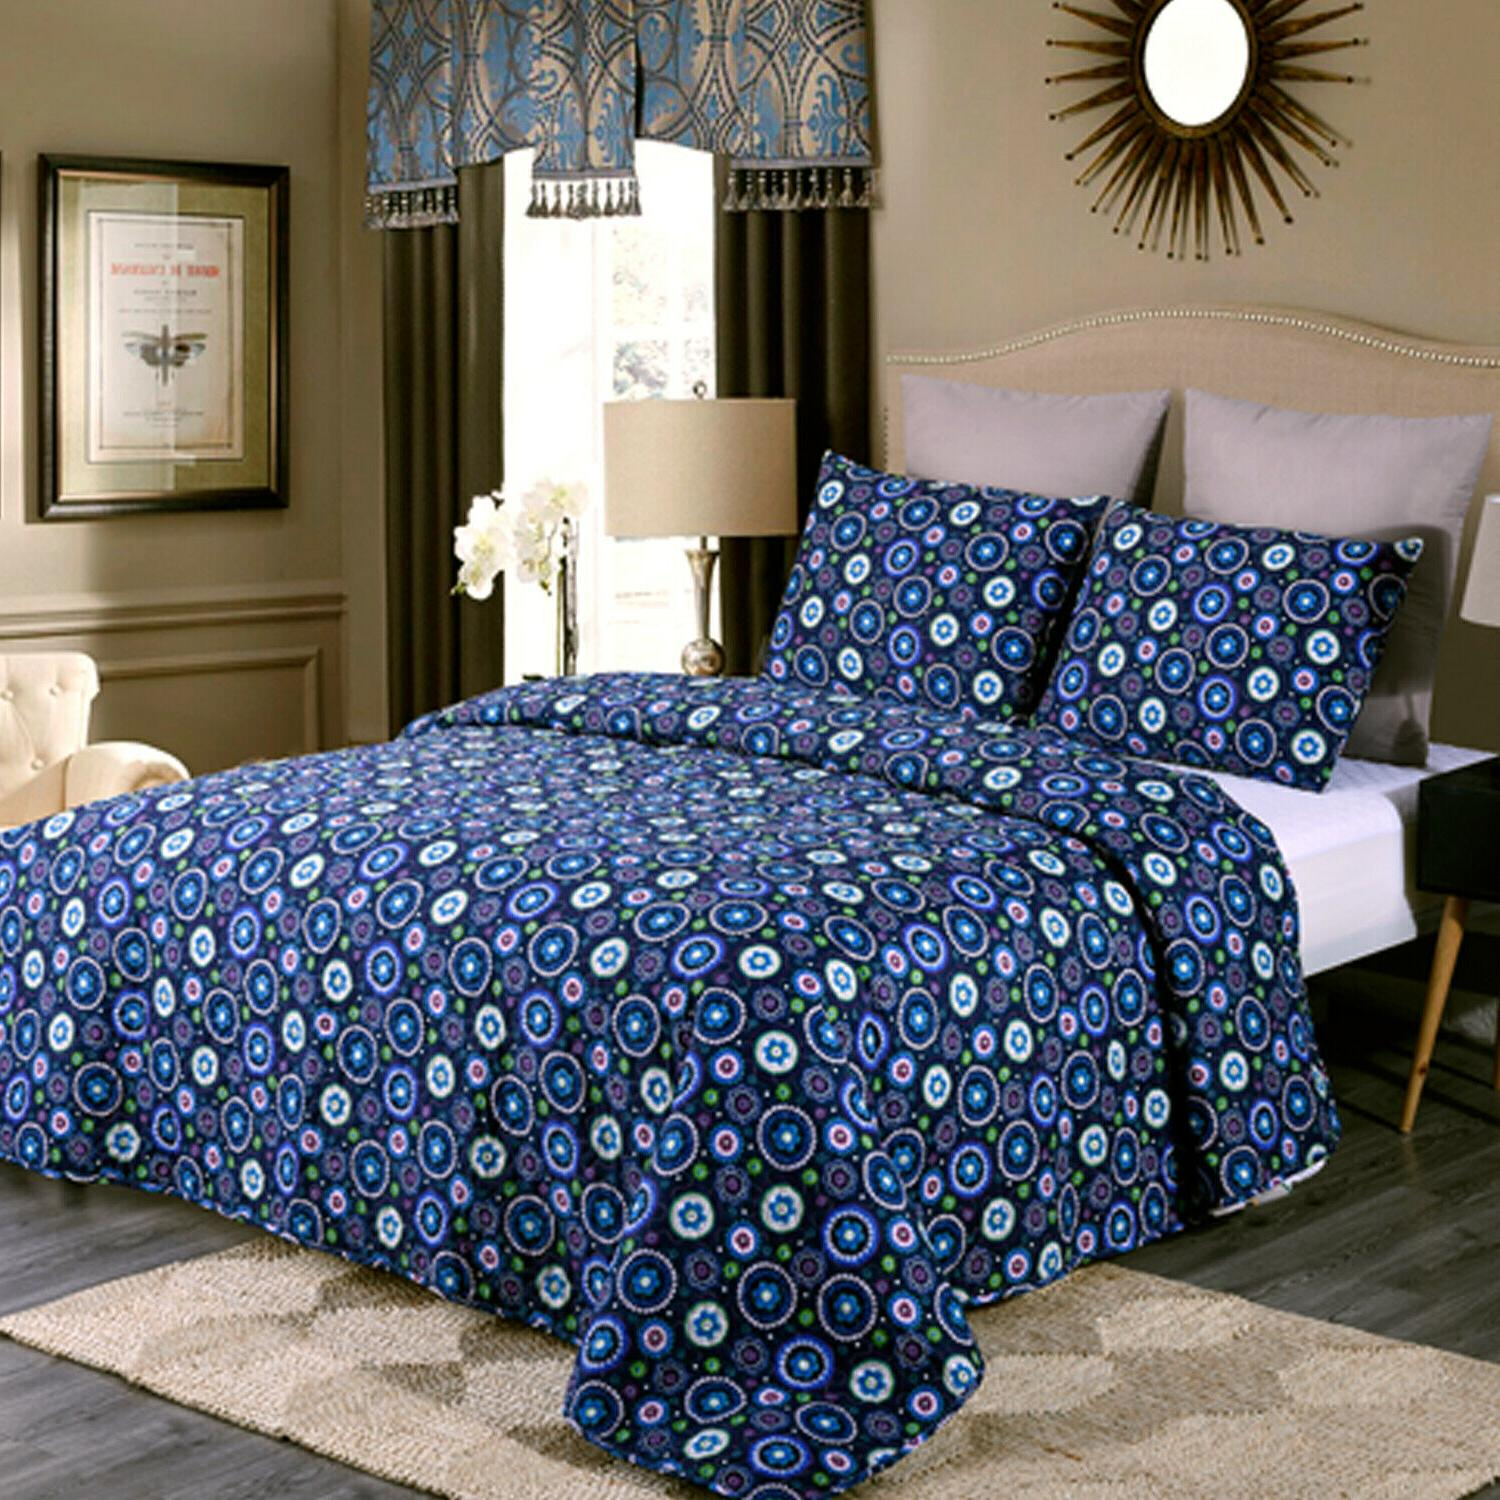 3-Piece Blooming Floral Patchwork Quilt Set Bedspreads